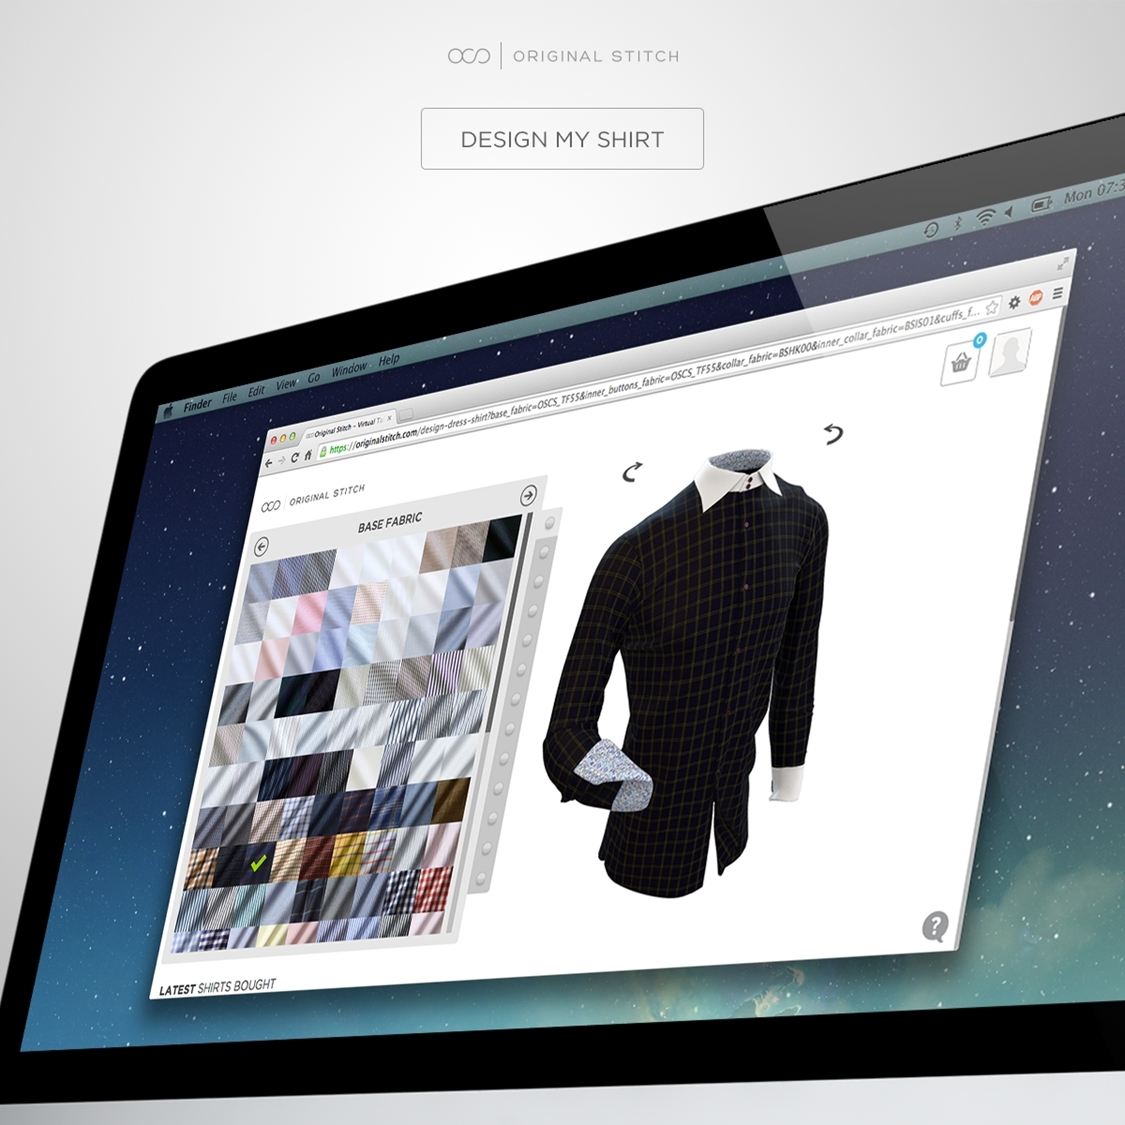 Interactive 3D design app lets you preview your customization in real time. Play with over 200 patterns and colors! (Photo: Business Wire)